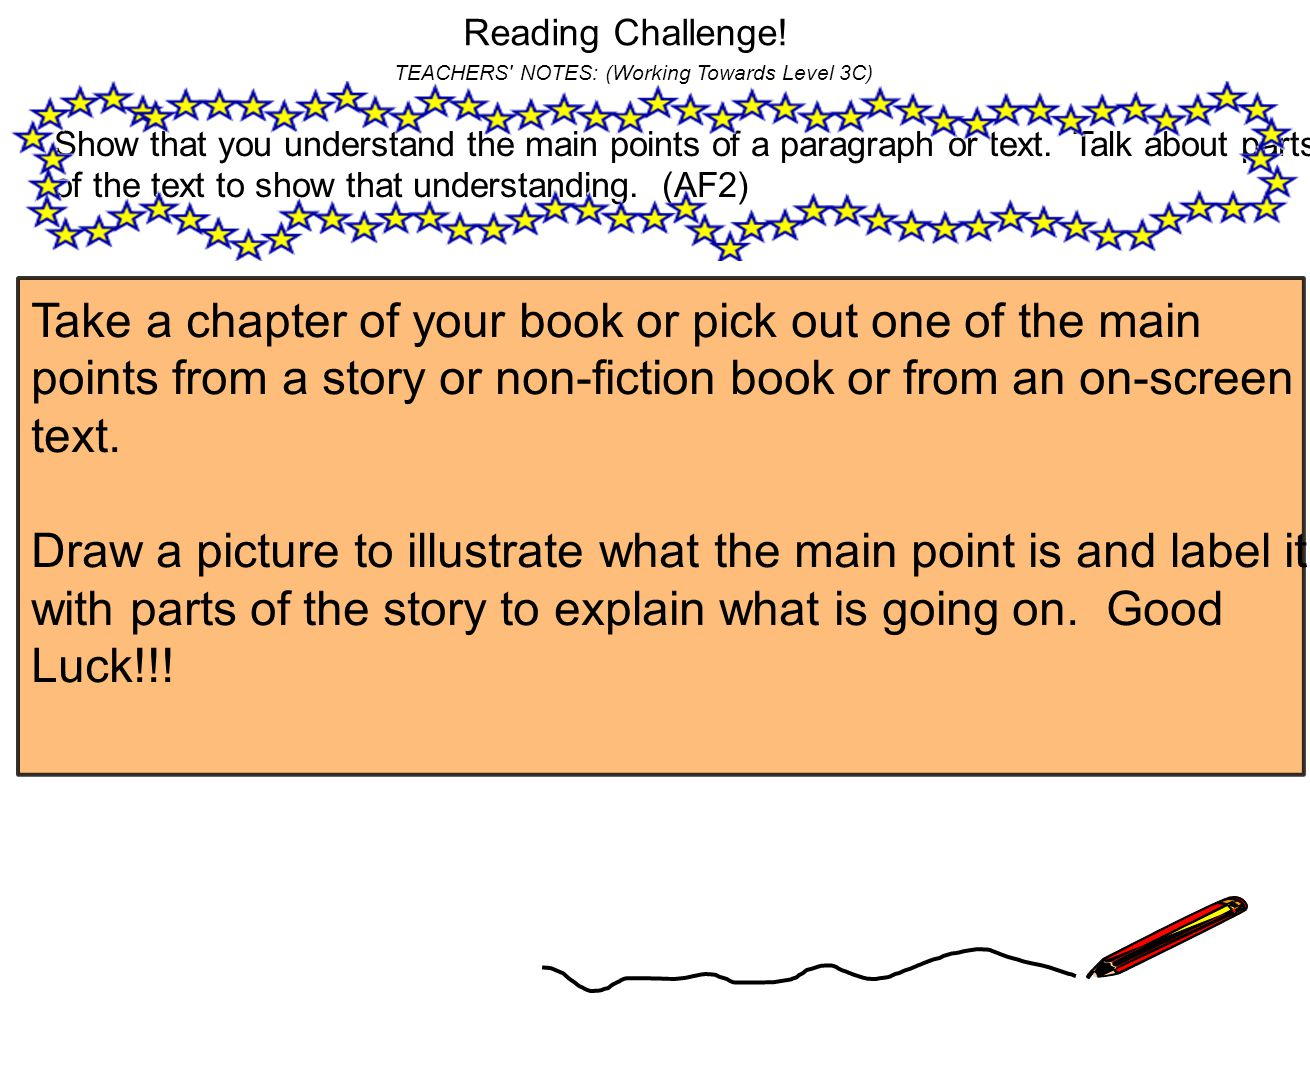 Reading Challenge! TEACHERS NOTES: (Working Towards Level 3C)